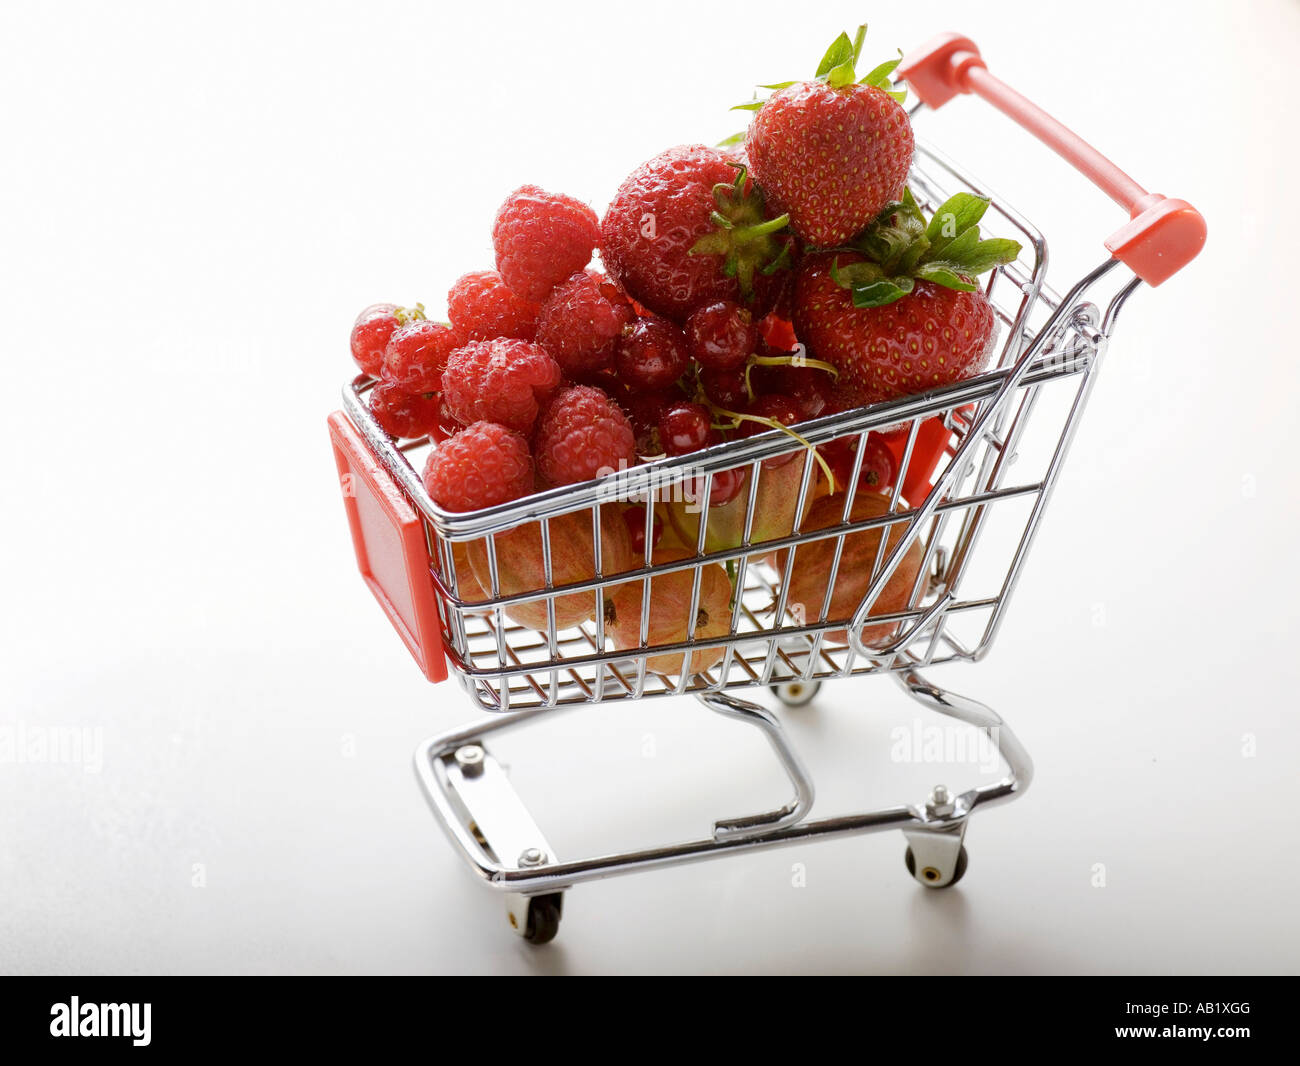 Assorted berries in toy shopping trolley FoodCollection - Stock Image